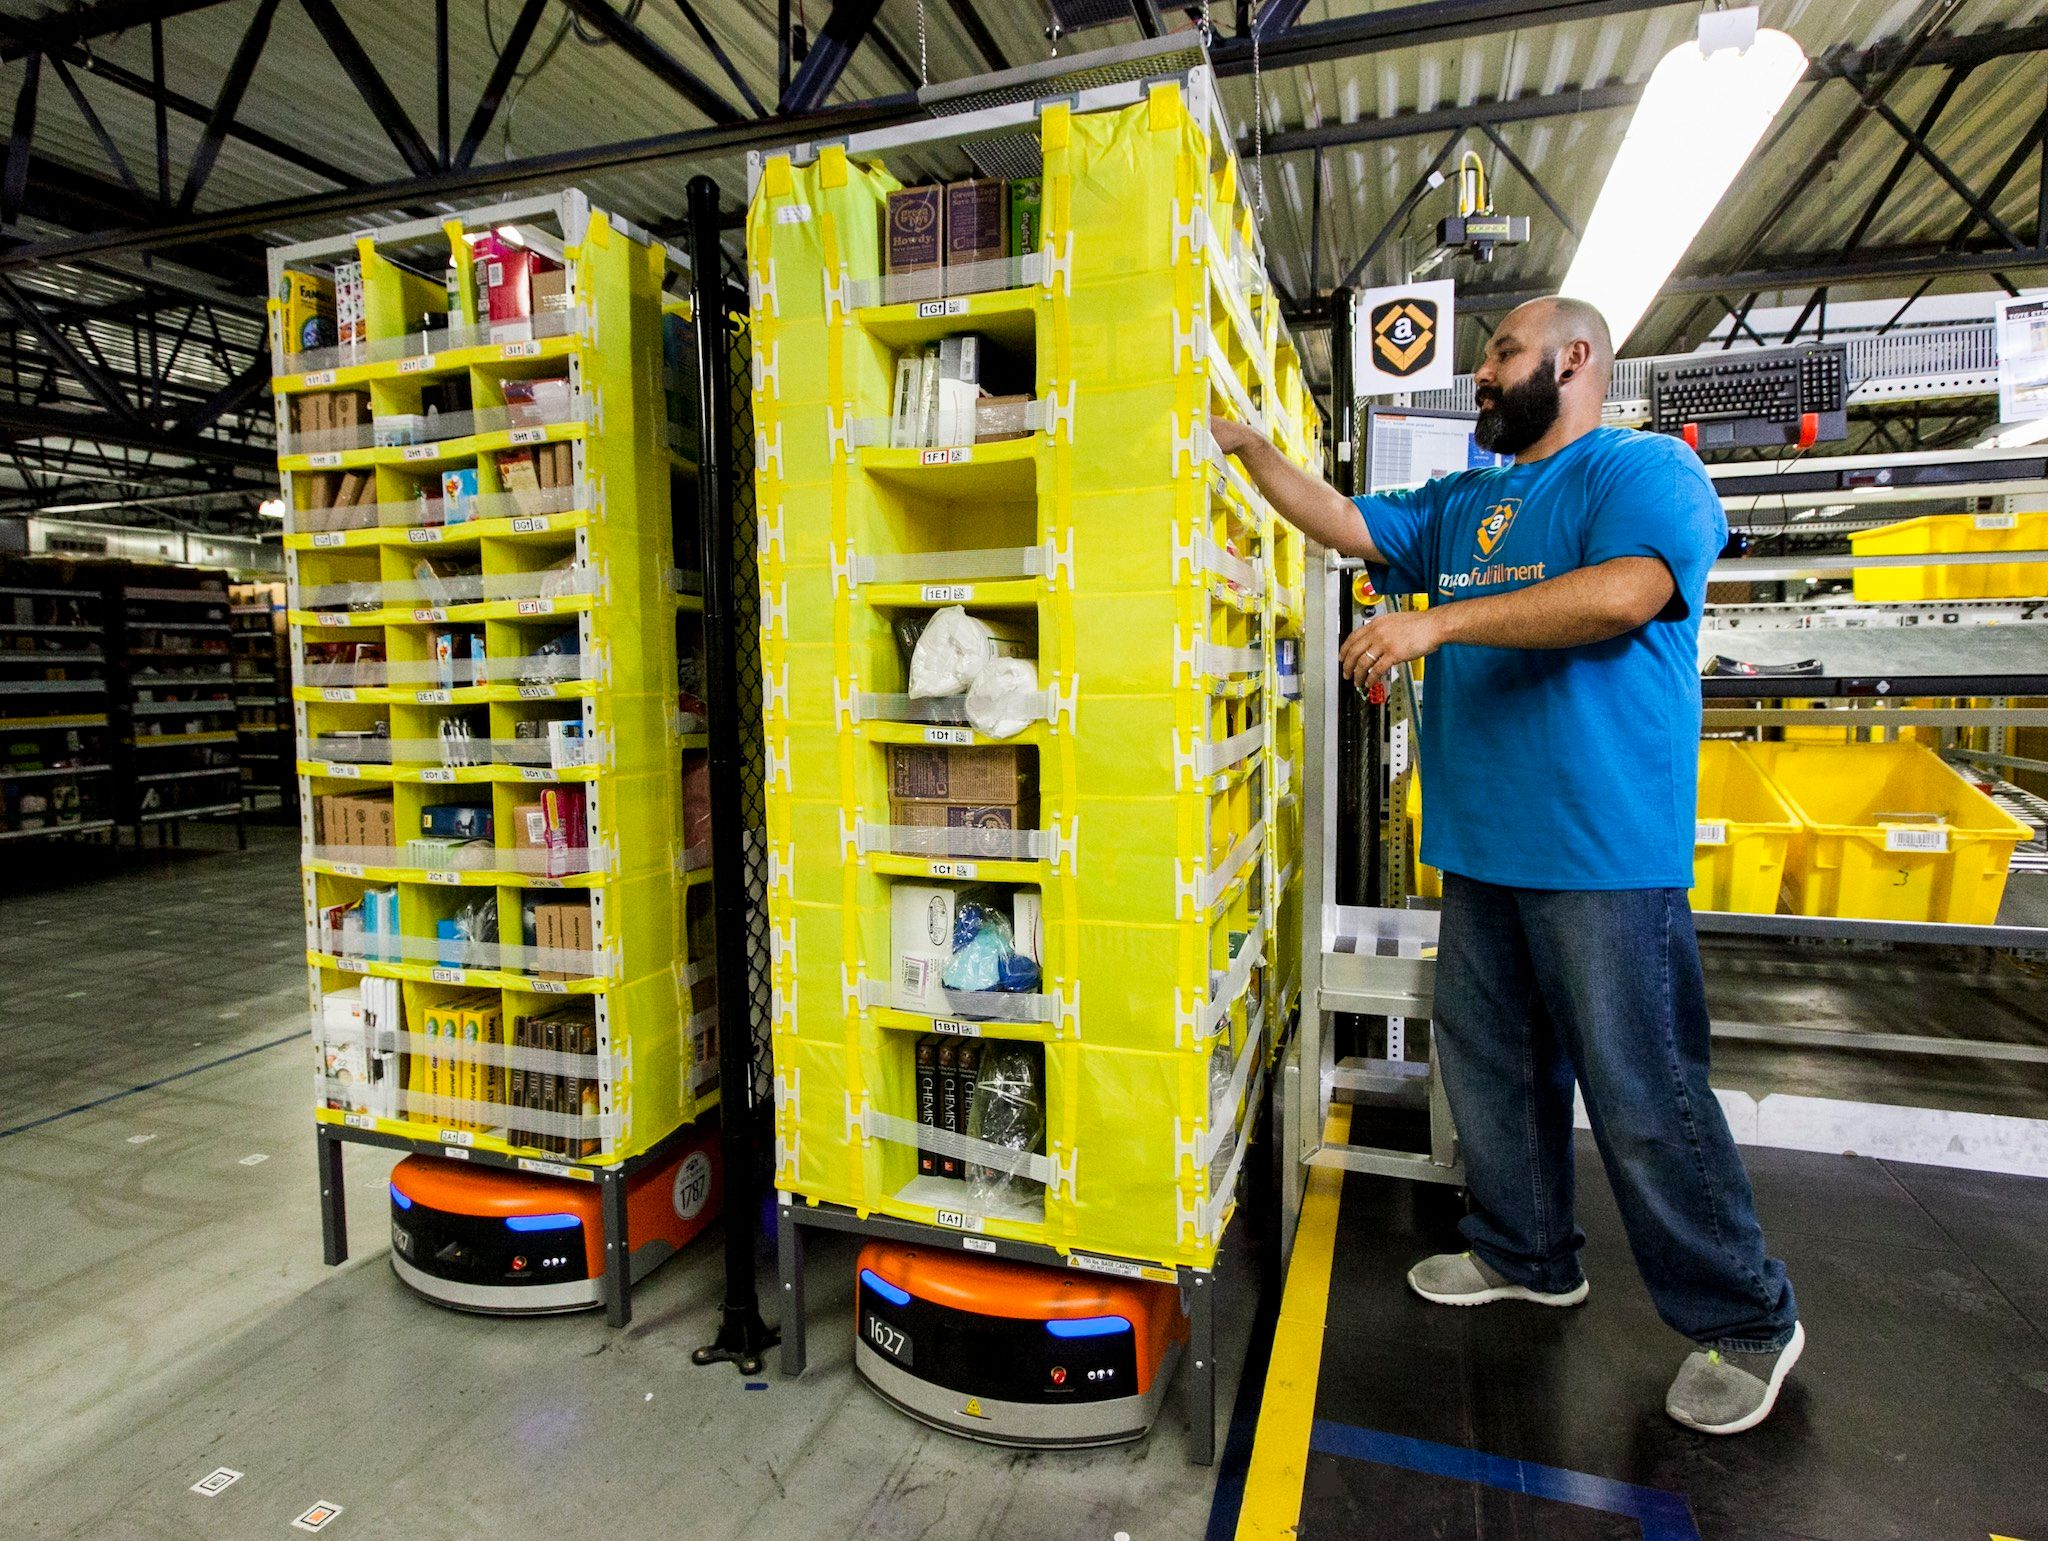 Amazon robots at a fulfillment center